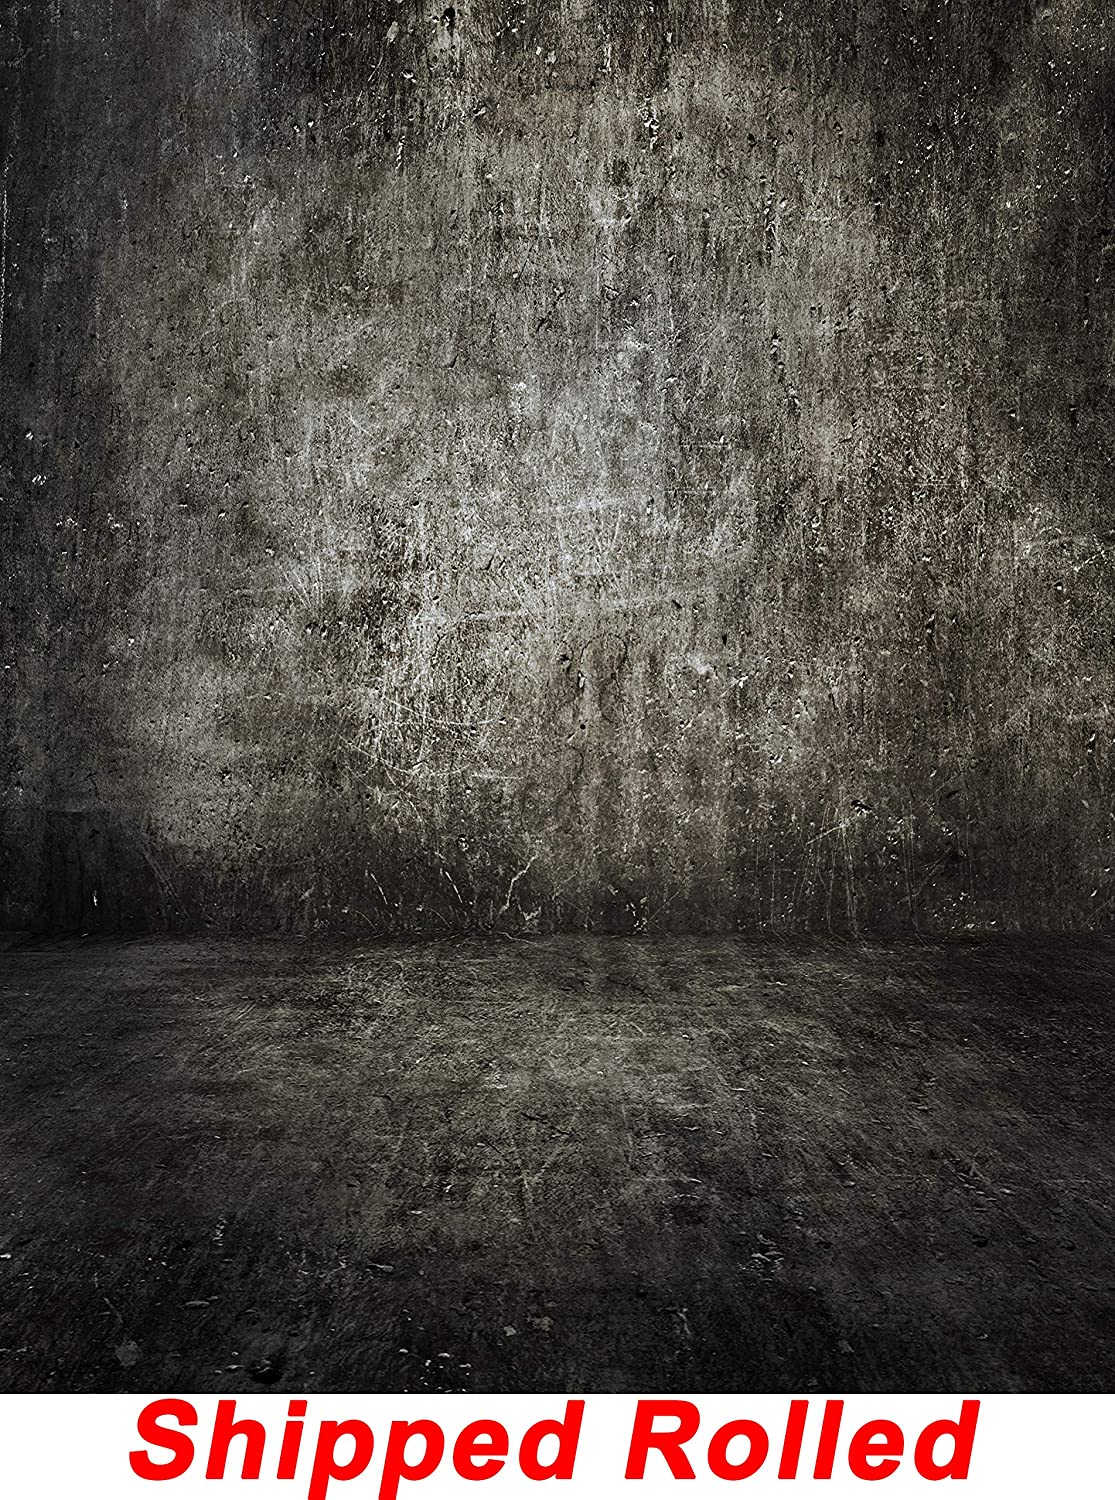 Grunge Grey Concrete Wall Backdrop Rustic Weathered Stained Vintage Retro Old Dark Aged Gray Cement Wall Floor Printed Canvas Photography Background (G0502, 8' Wide by 10' Tall)